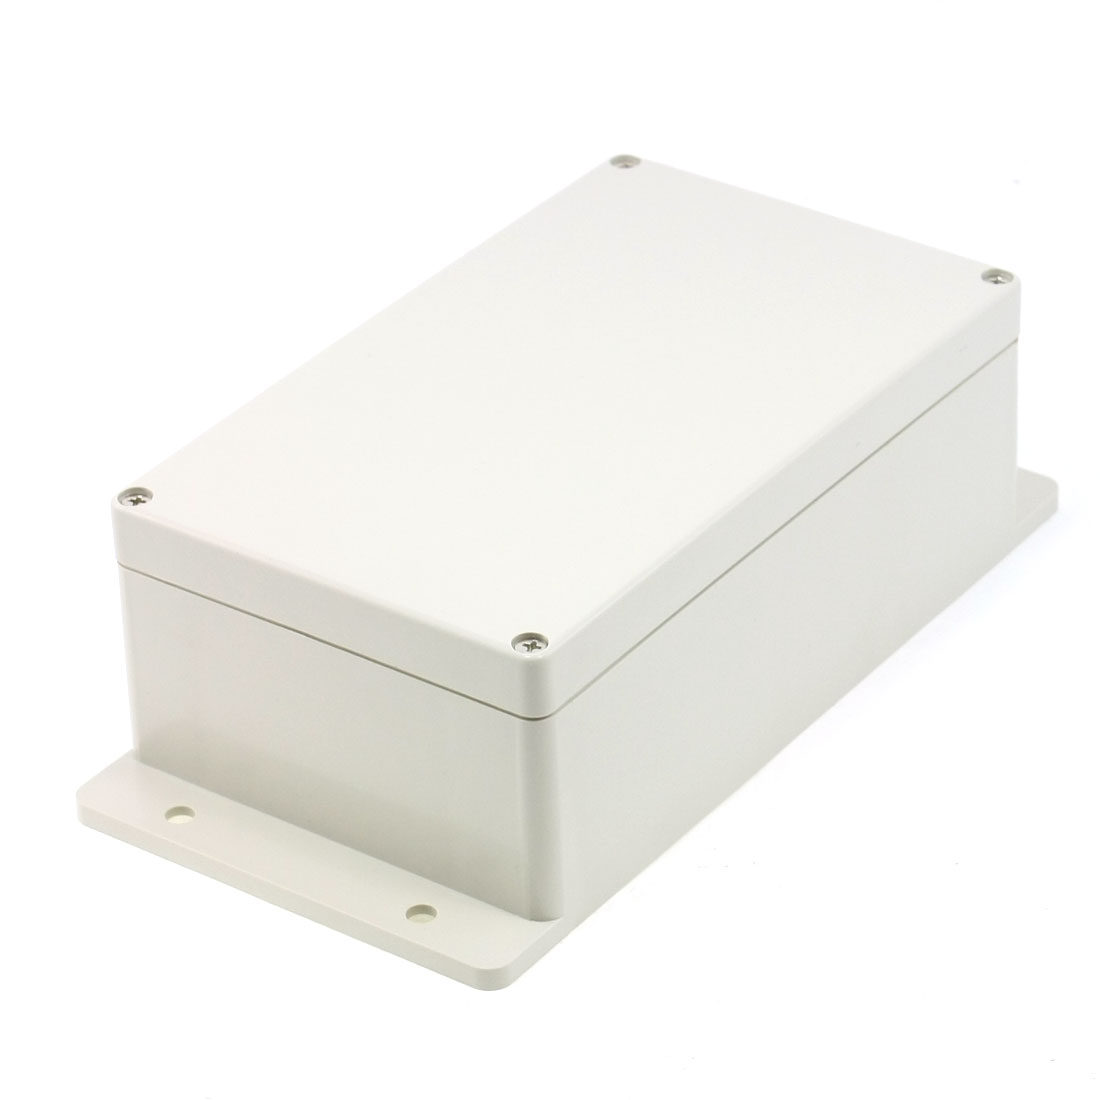 200mm-x-121mm-x-75mm-Waterproof-Plastic-Enclosure-Case-DIY-Junction-Box